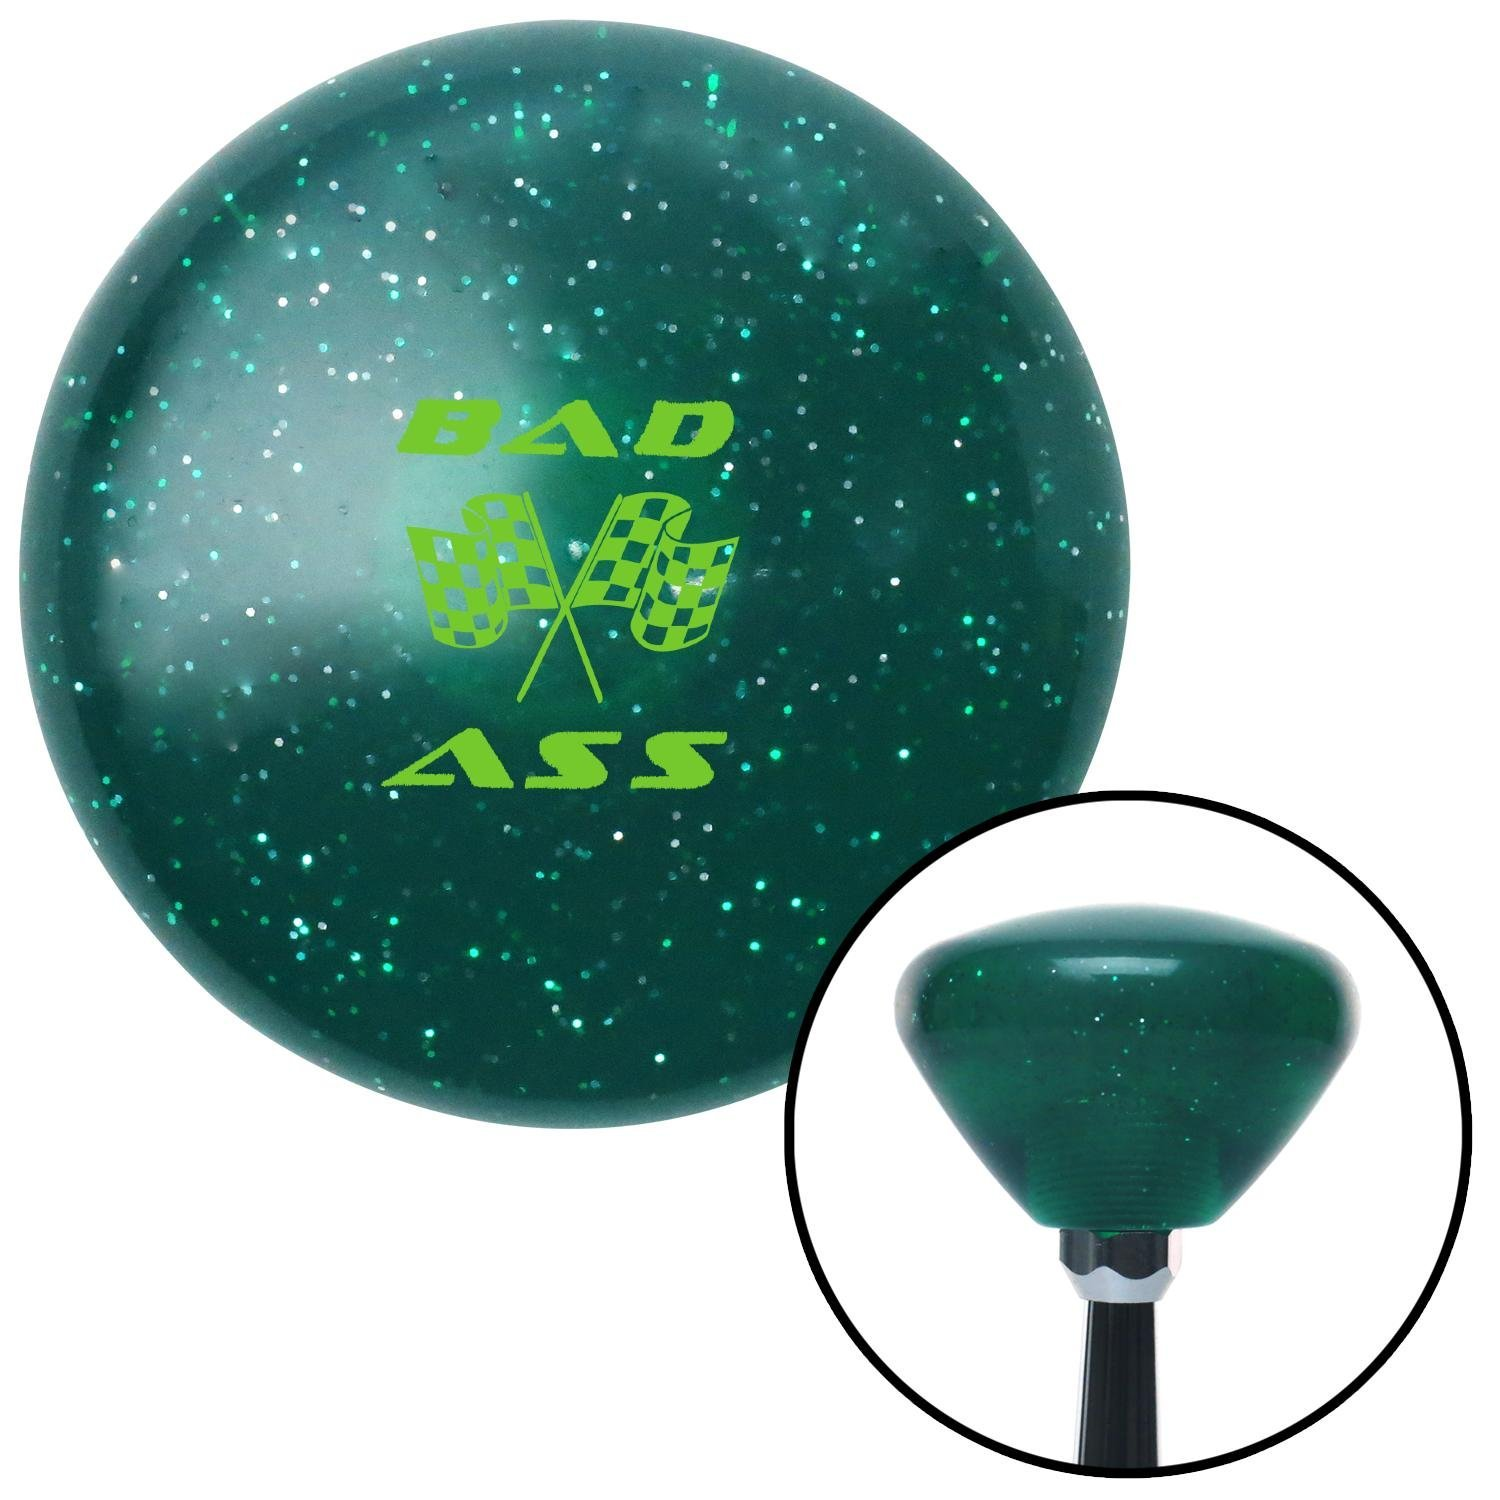 Green Bad Ass Flags American Shifter 208014 Green Retro Metal Flake Shift Knob with M16 x 1.5 Insert